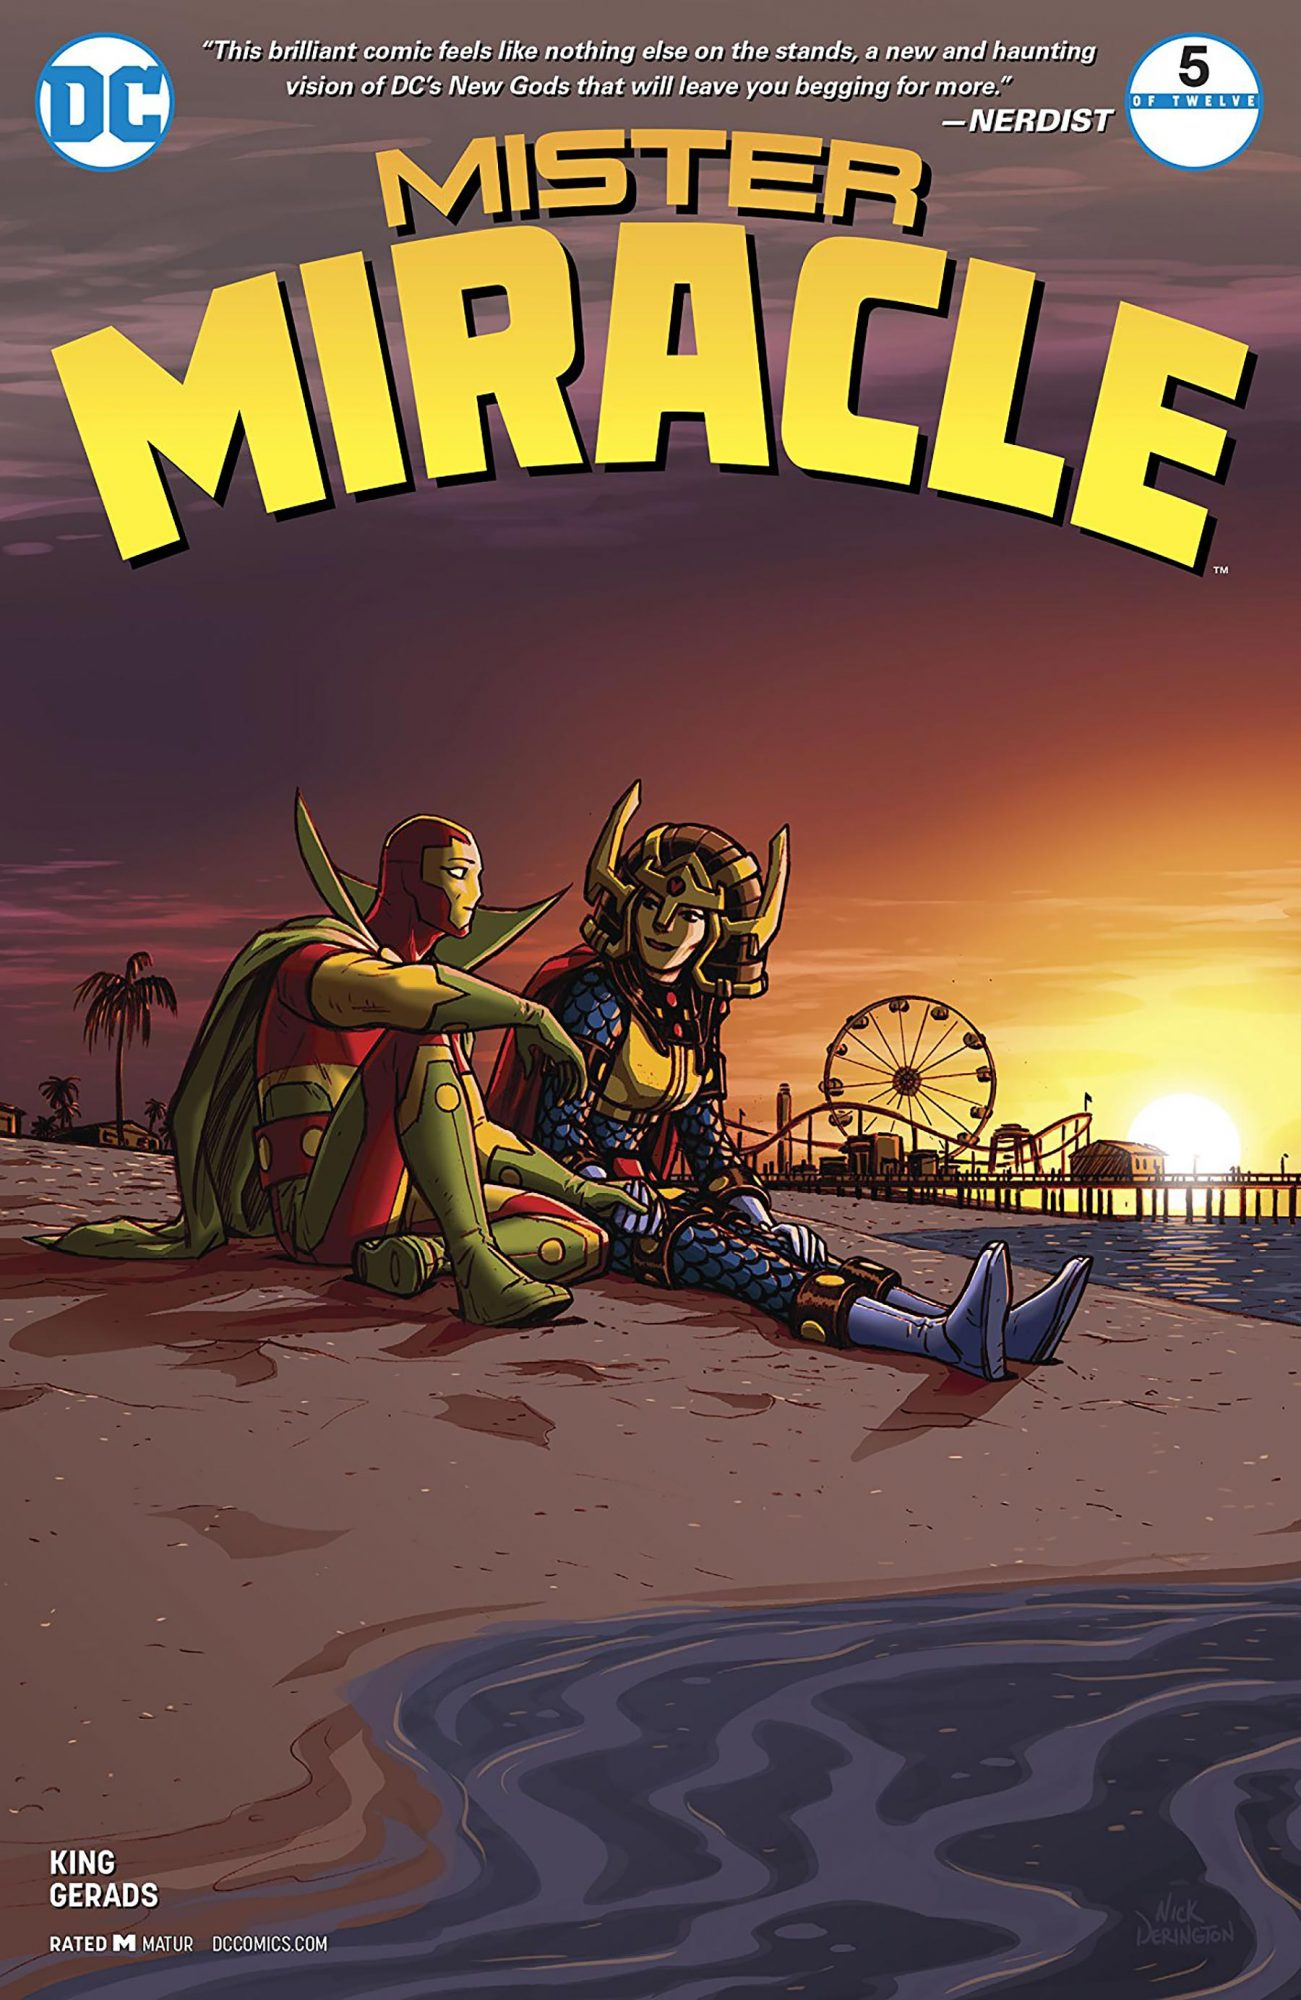 Mister Miracle #5 CR: DC Comics